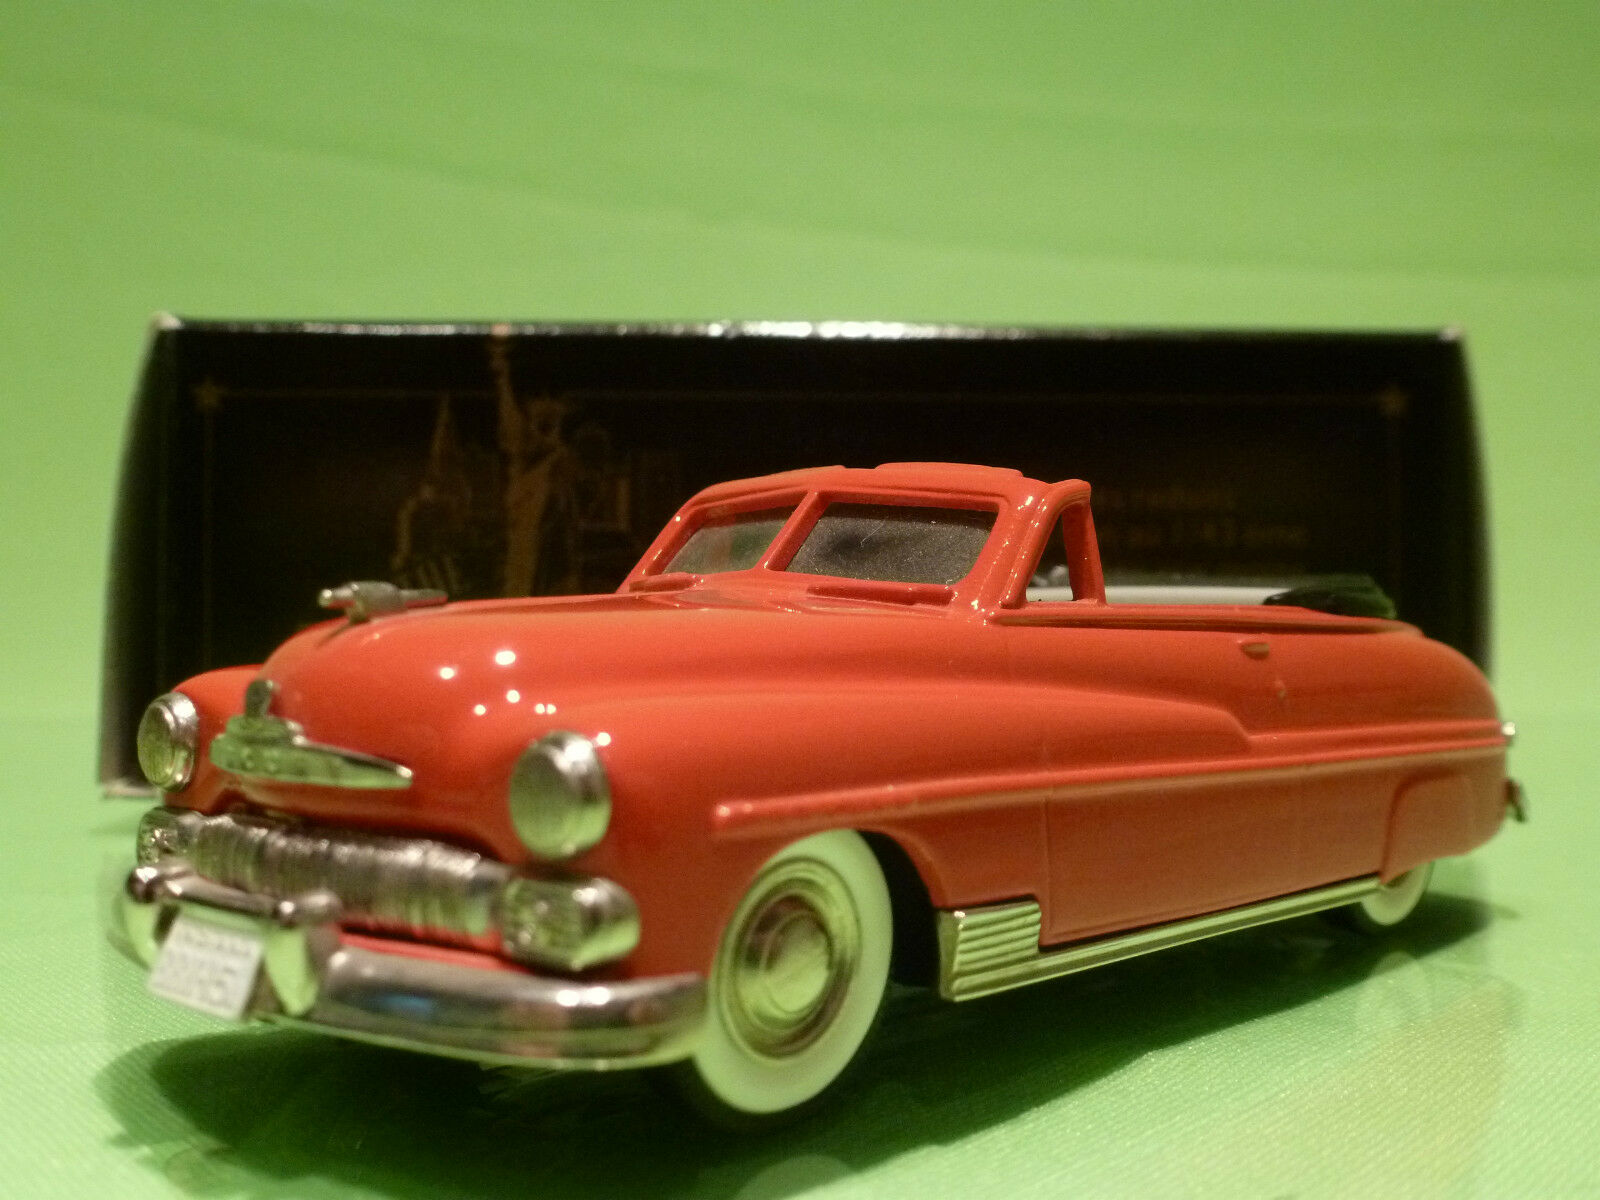 BROOKLIN MODELS BRK 15a MERCURY CONVERTIBLE 1950 - rouge - 1 43 - NMIB